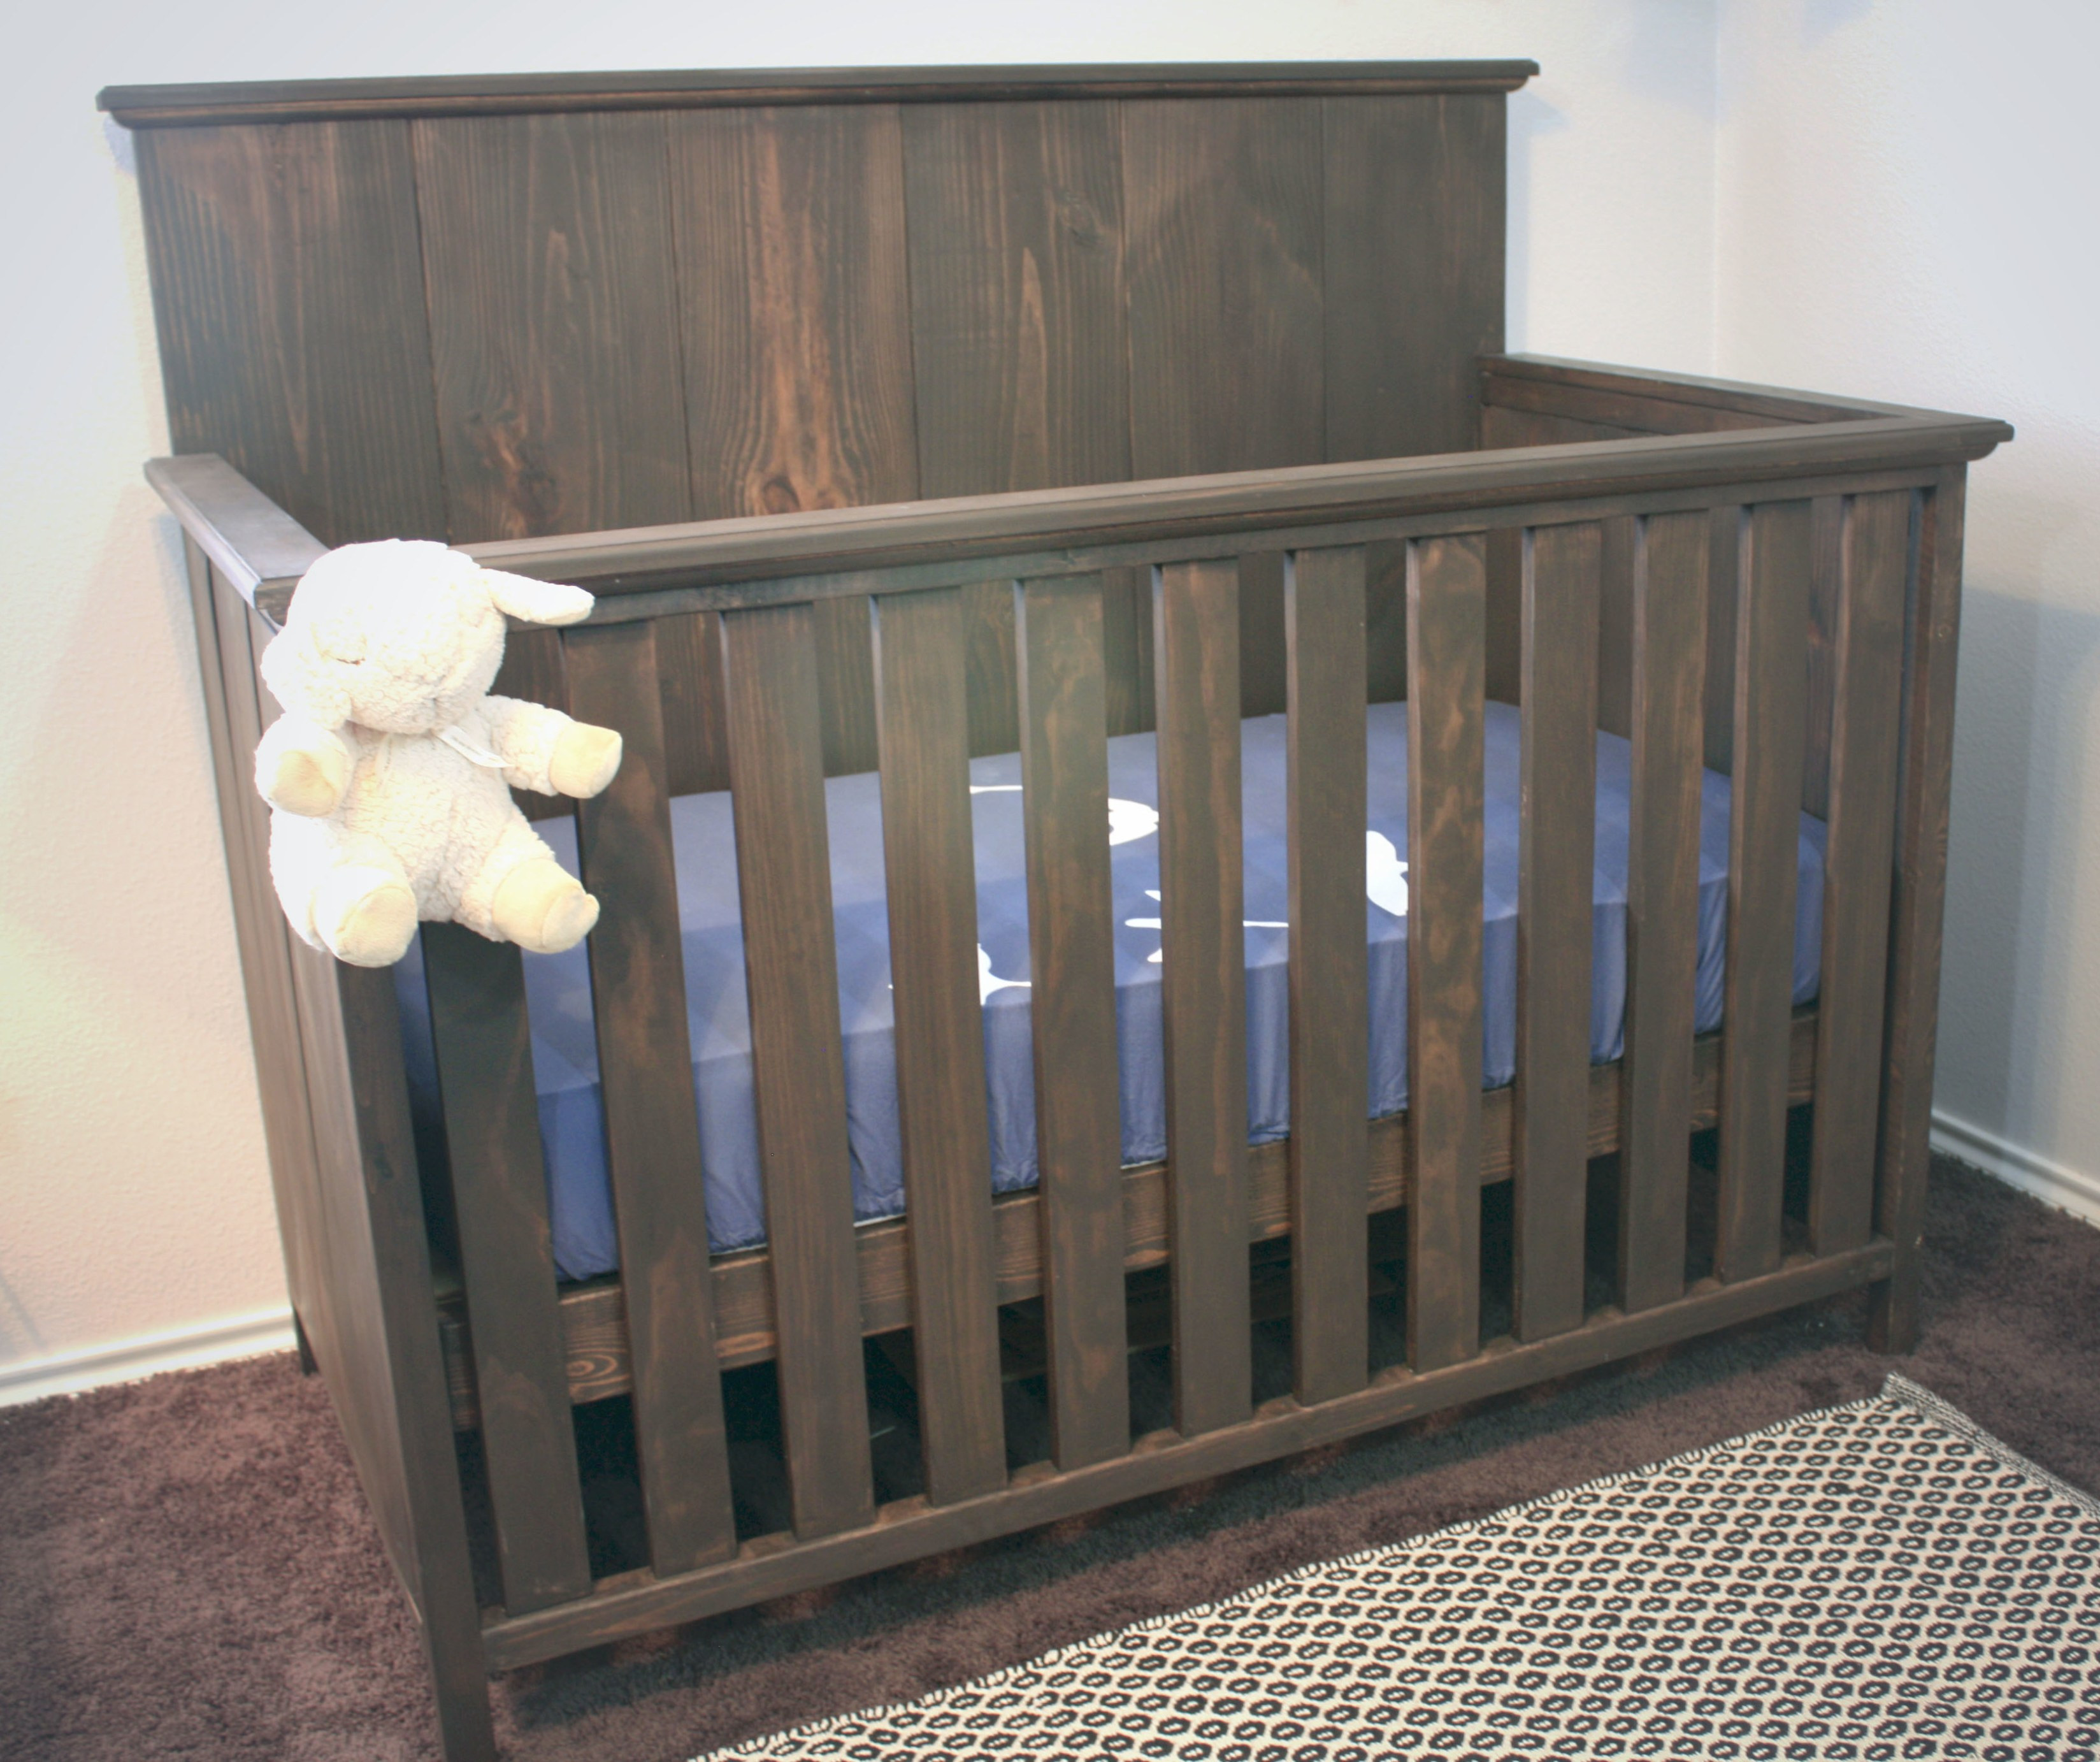 Best ideas about DIY Baby Crib . Save or Pin How To Build a Crib for $200 Now.